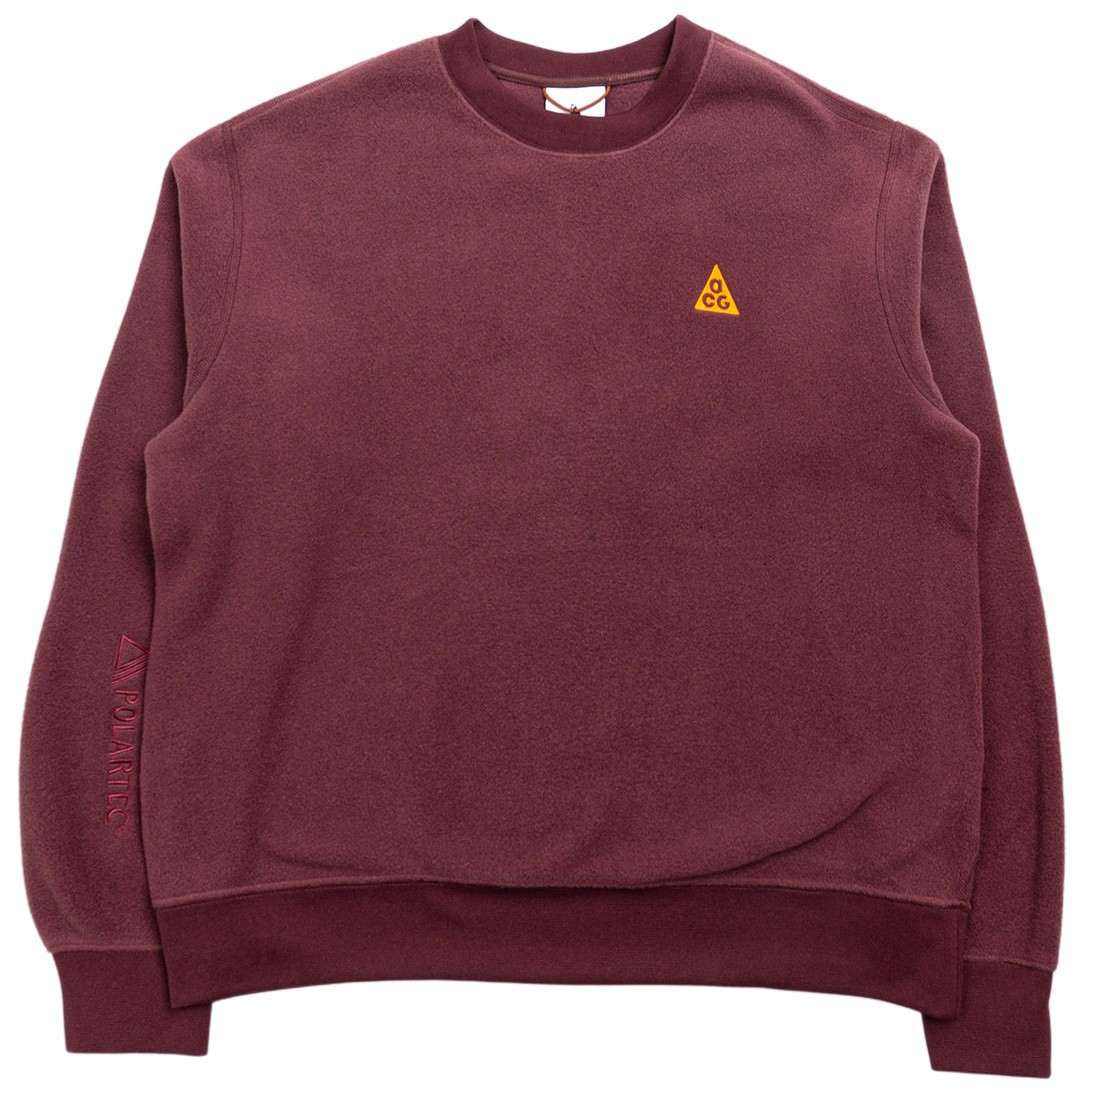 Nike Women W Nrg Acg Polar Crewneck (deep burgundy / clay orange / clay orange)